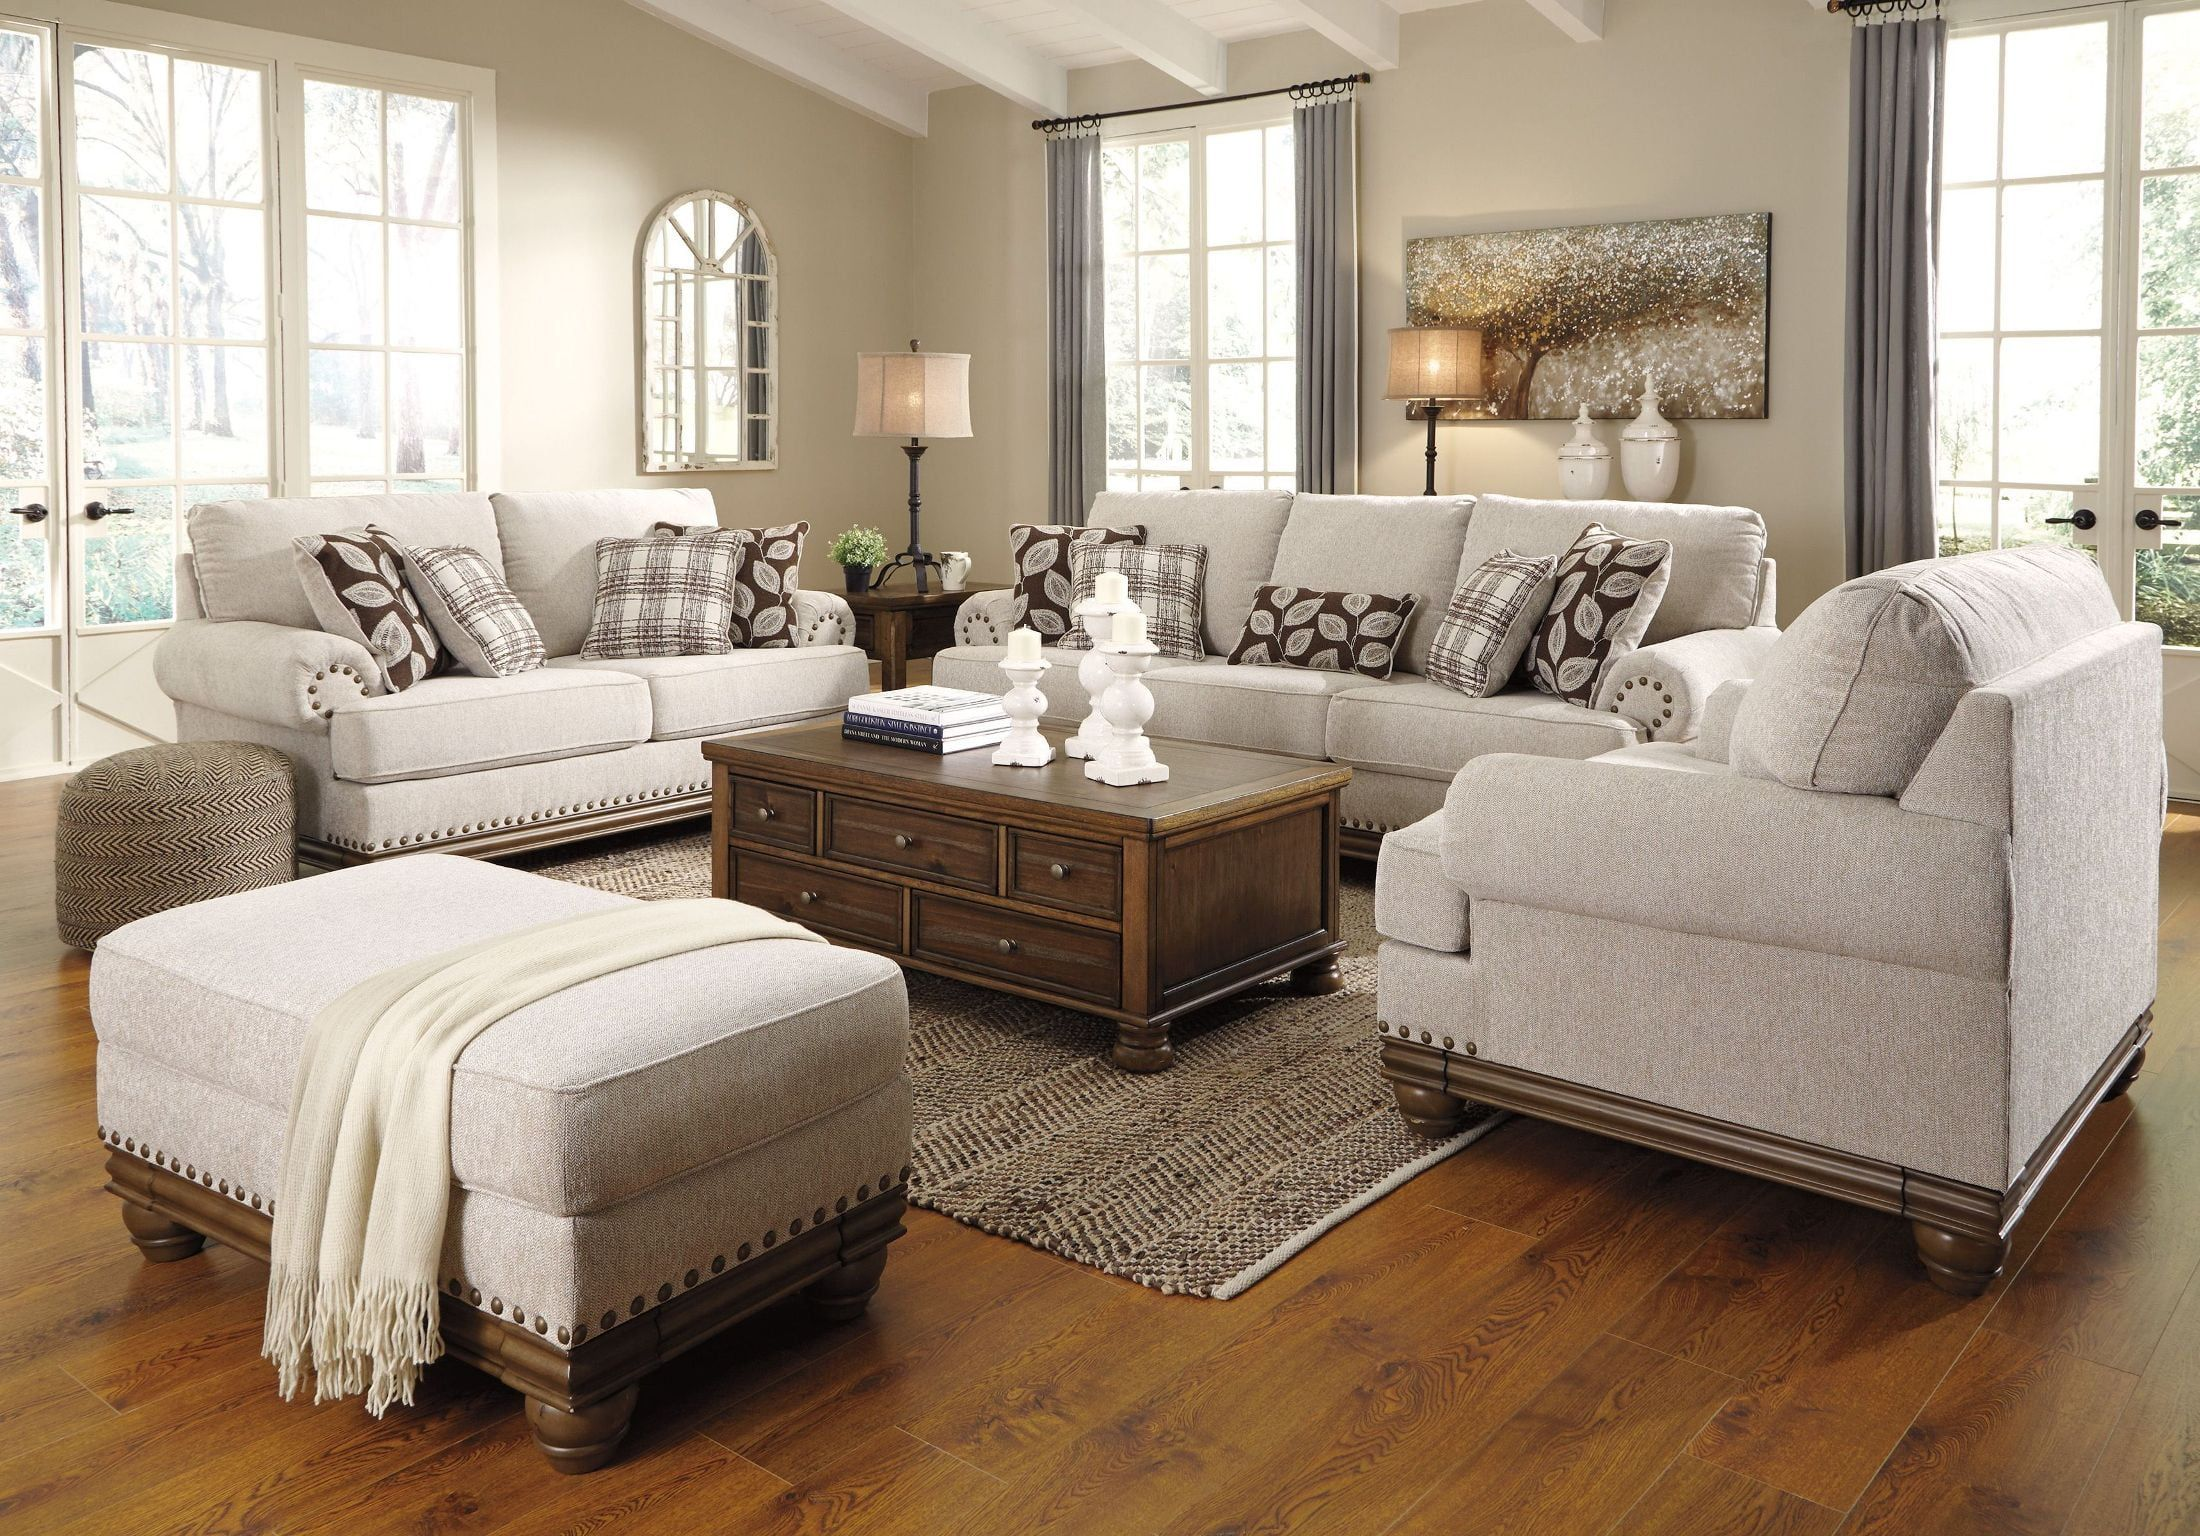 Harleson Wheat Living Room Set In 2020 Country Living Room Farm House Living Room Livingroom Layout